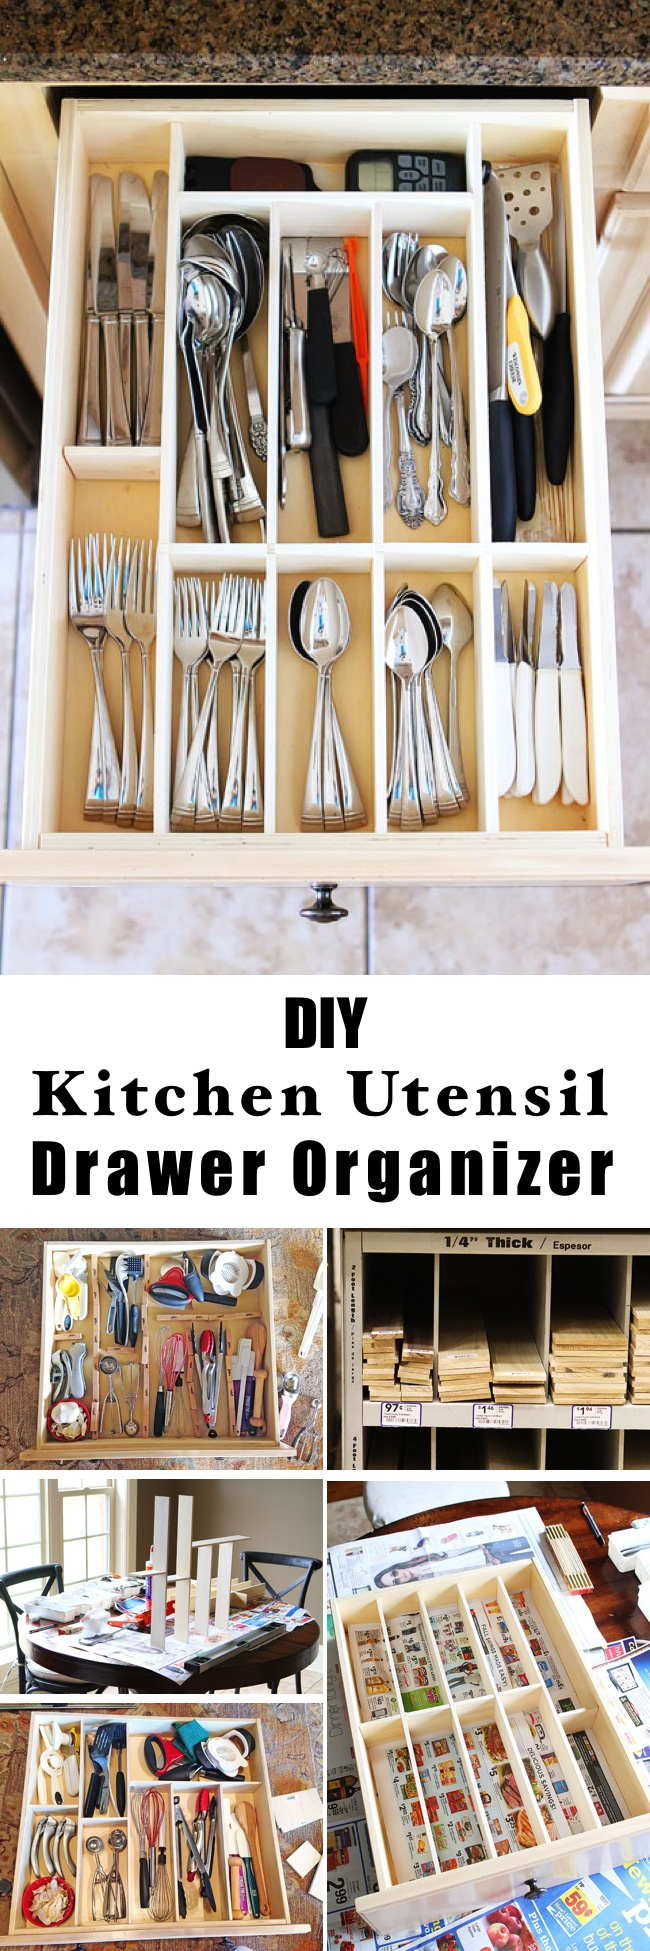 organized holder keeps flatware snap organizer wooden for utensil drawer organizers rubbermaid trays silverware on holde countertop shallow neatly